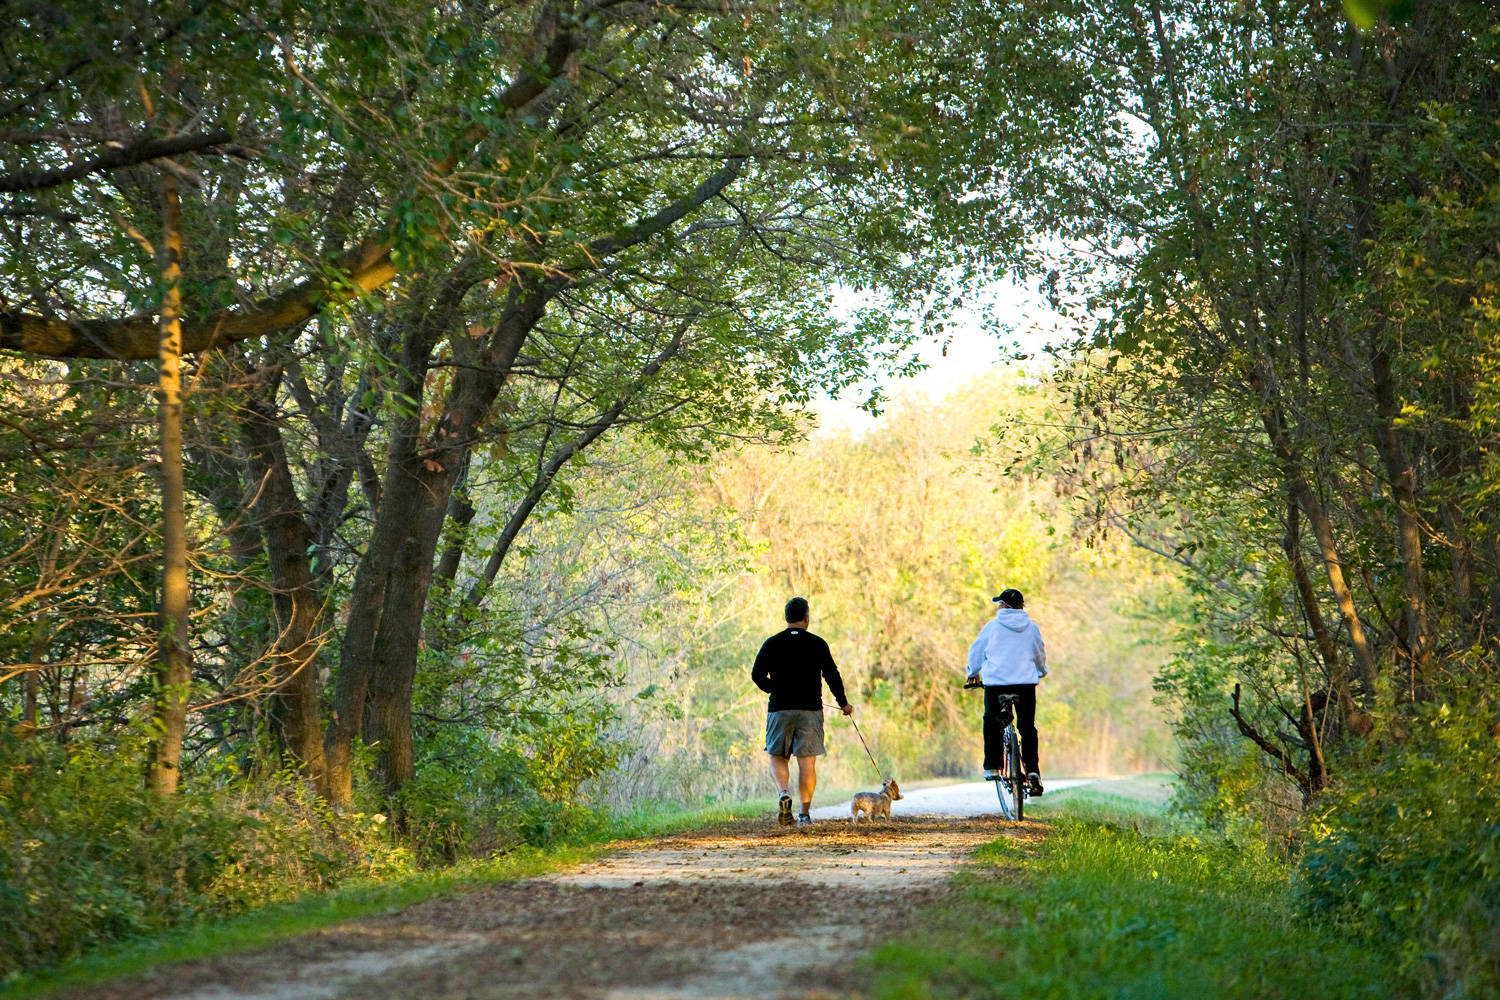 Heritage Trail. Photo courtesy of Dubuque Area Convention & Visitors Bureau.